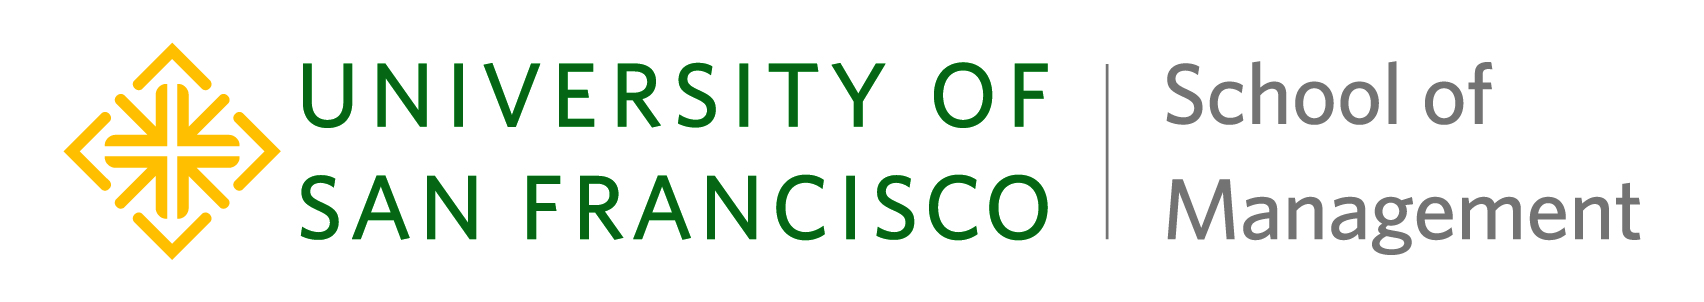 University of San Francisco School of Management